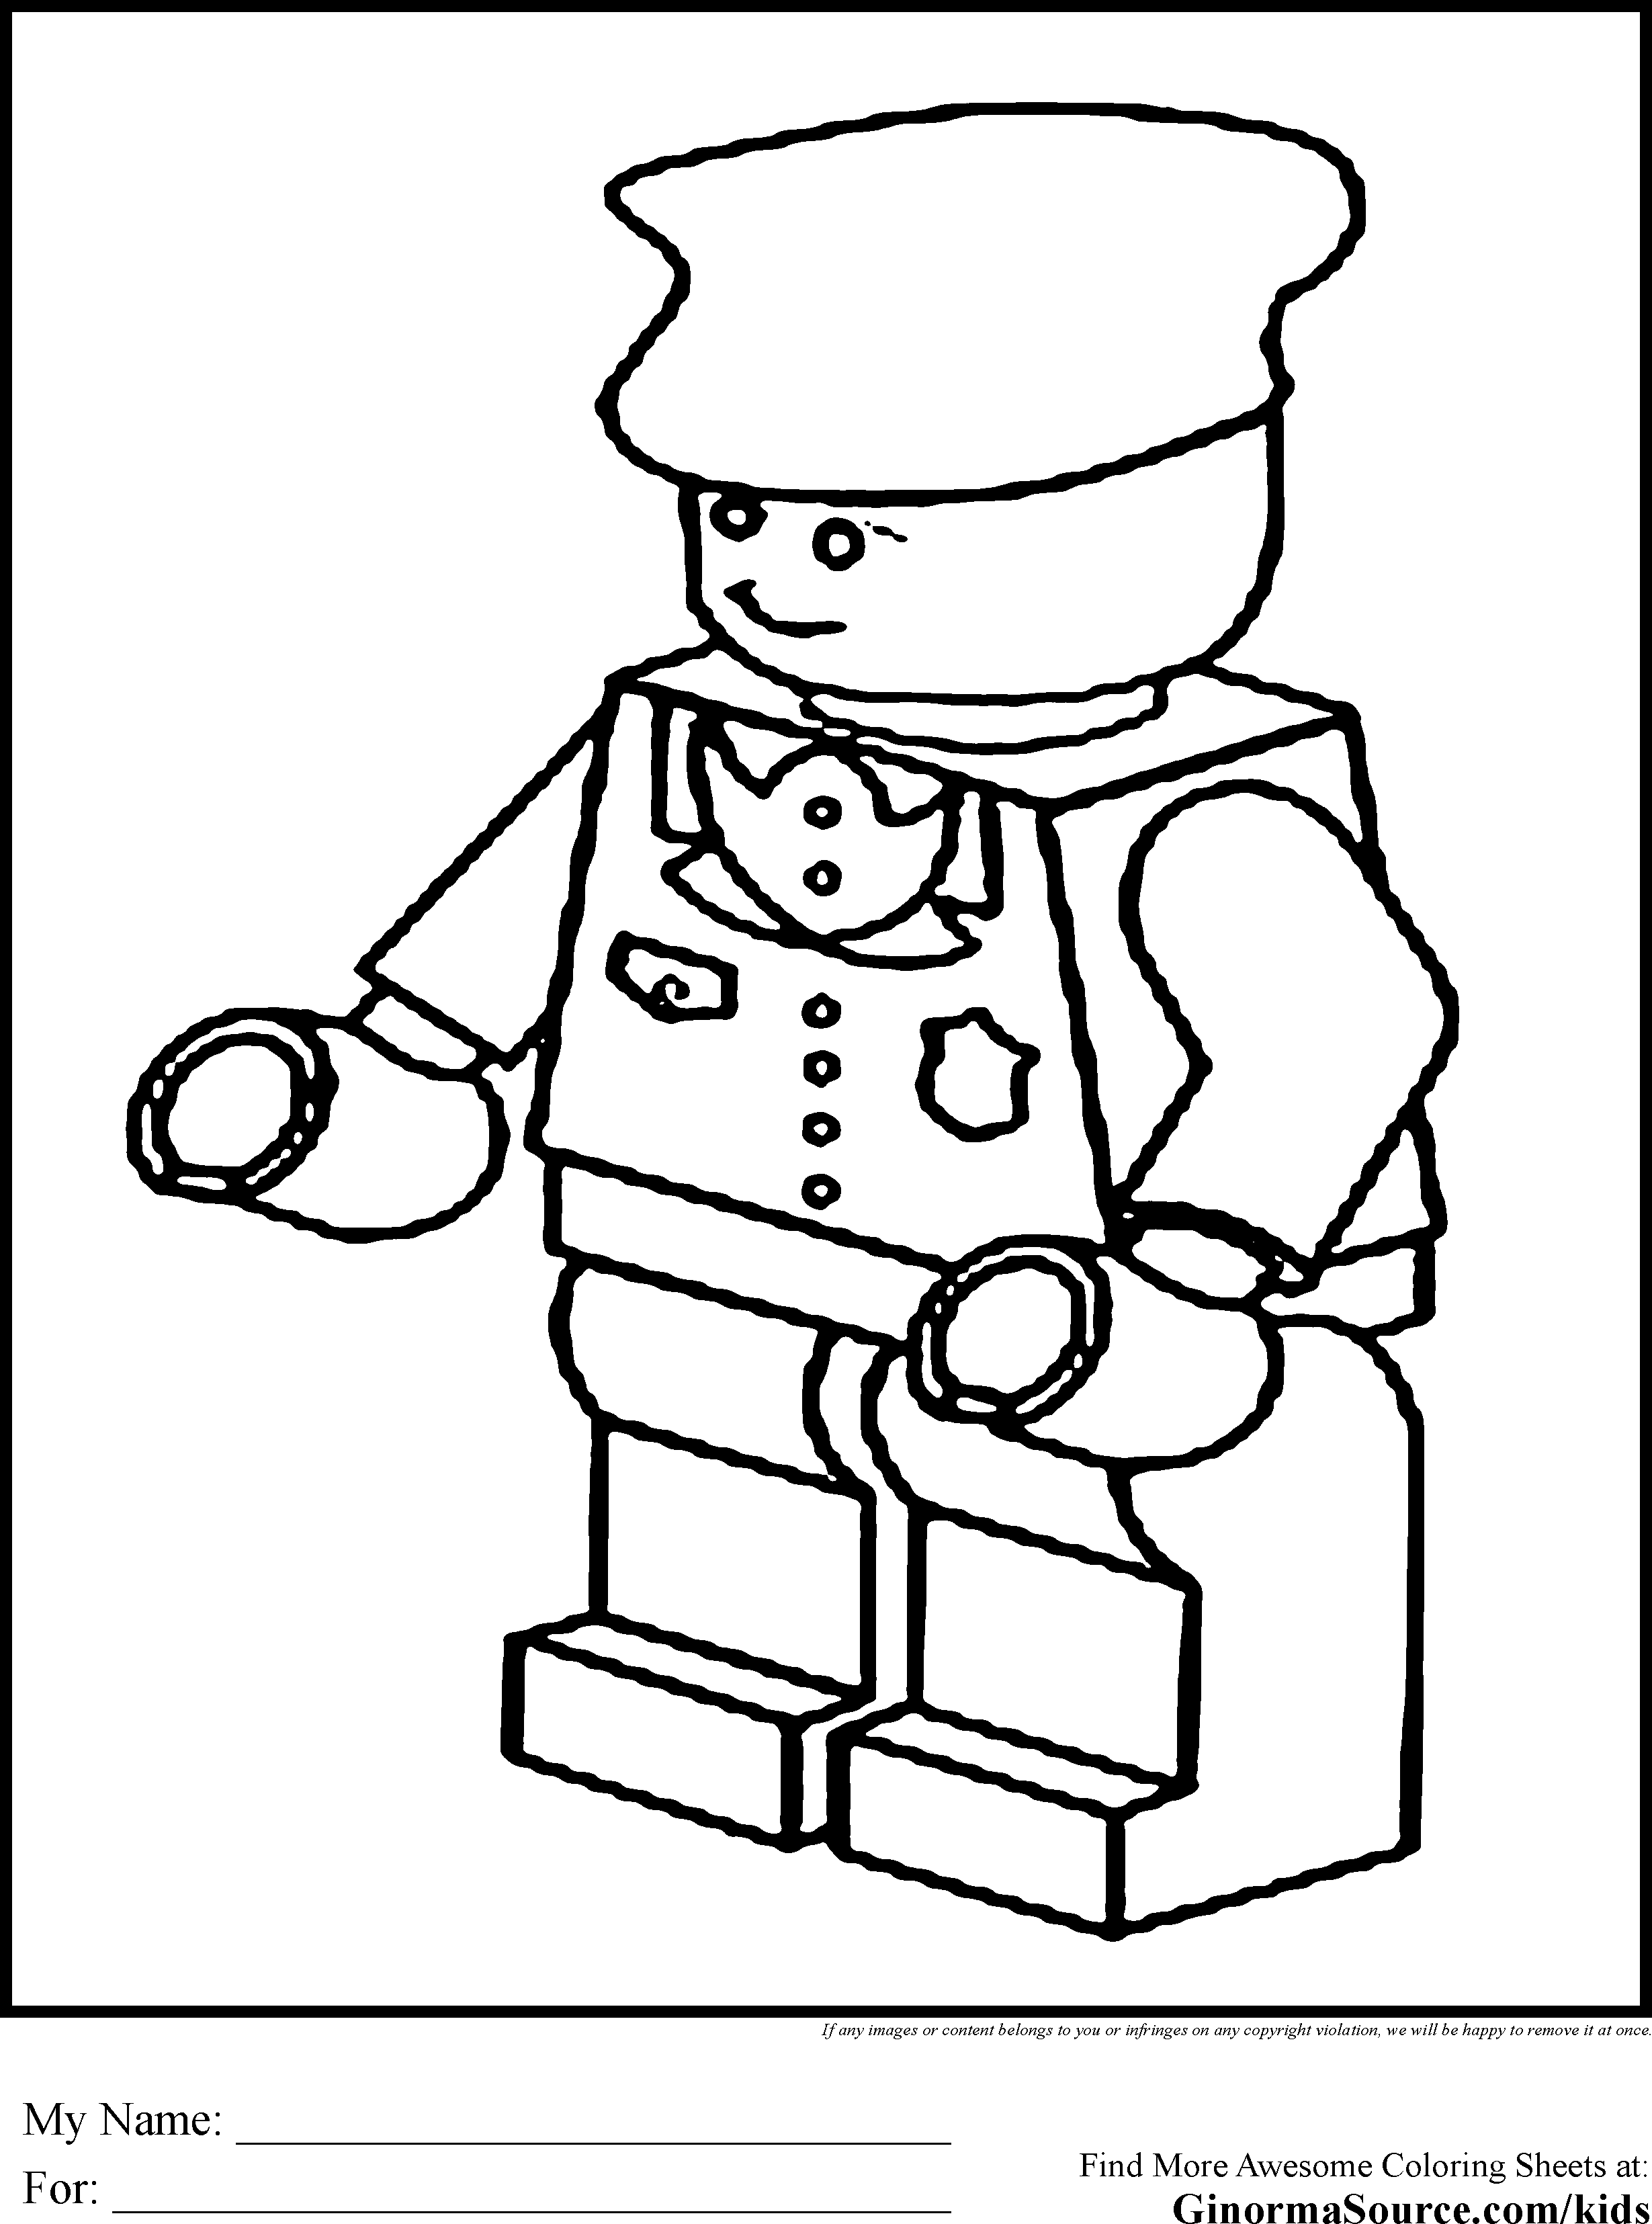 Lego block coloring page